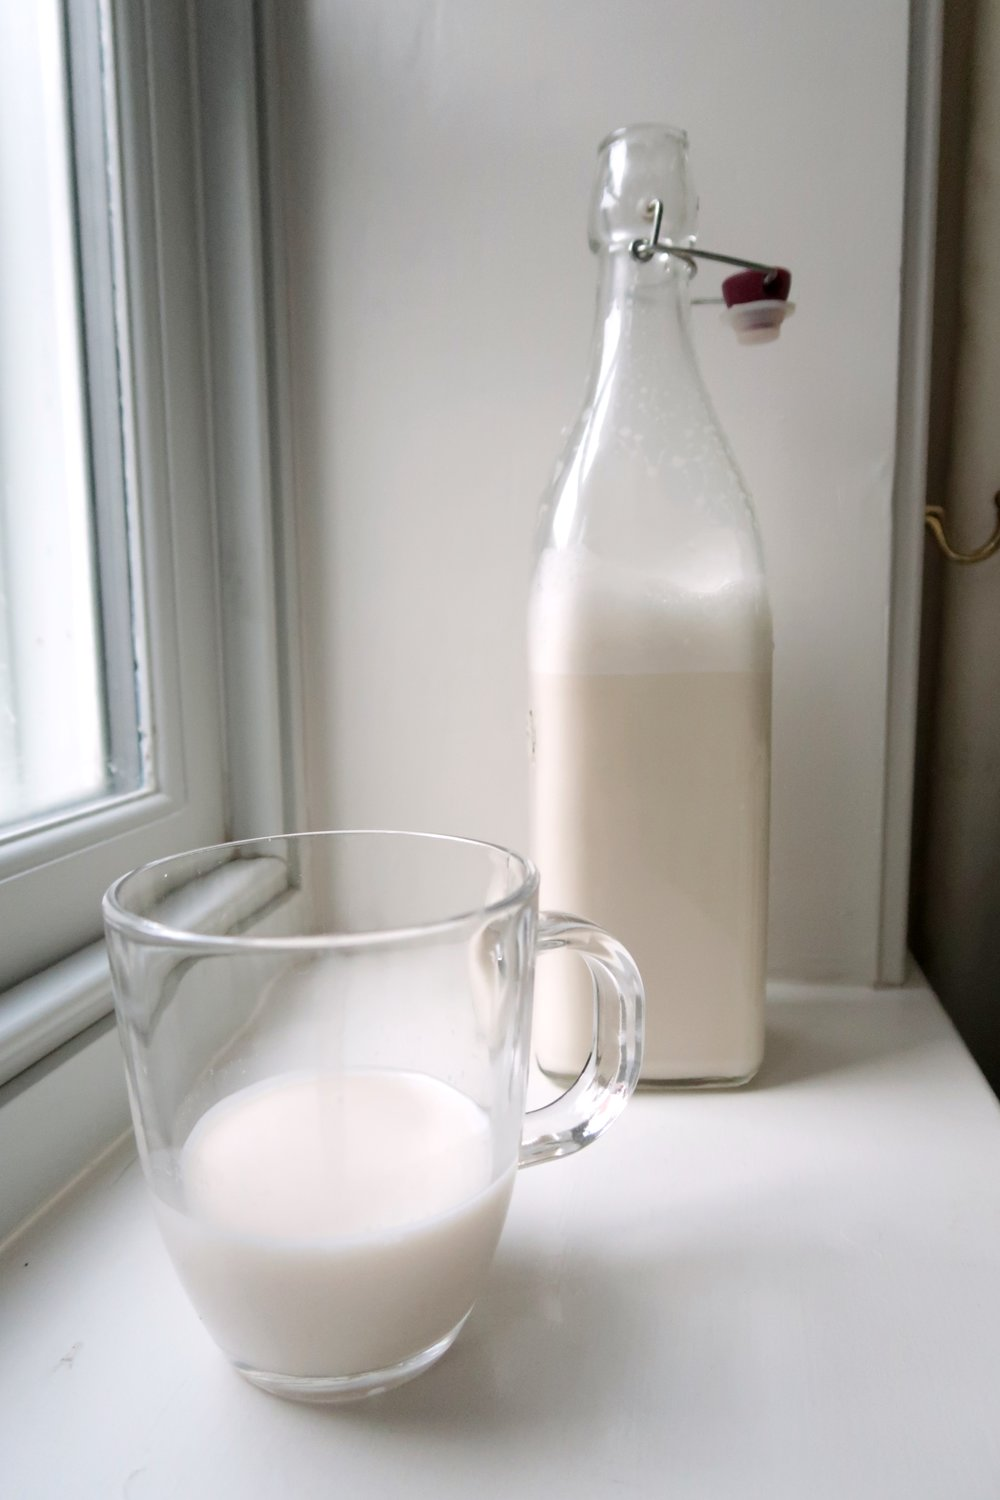 How to make Vanilla Almond Milk, Holly White